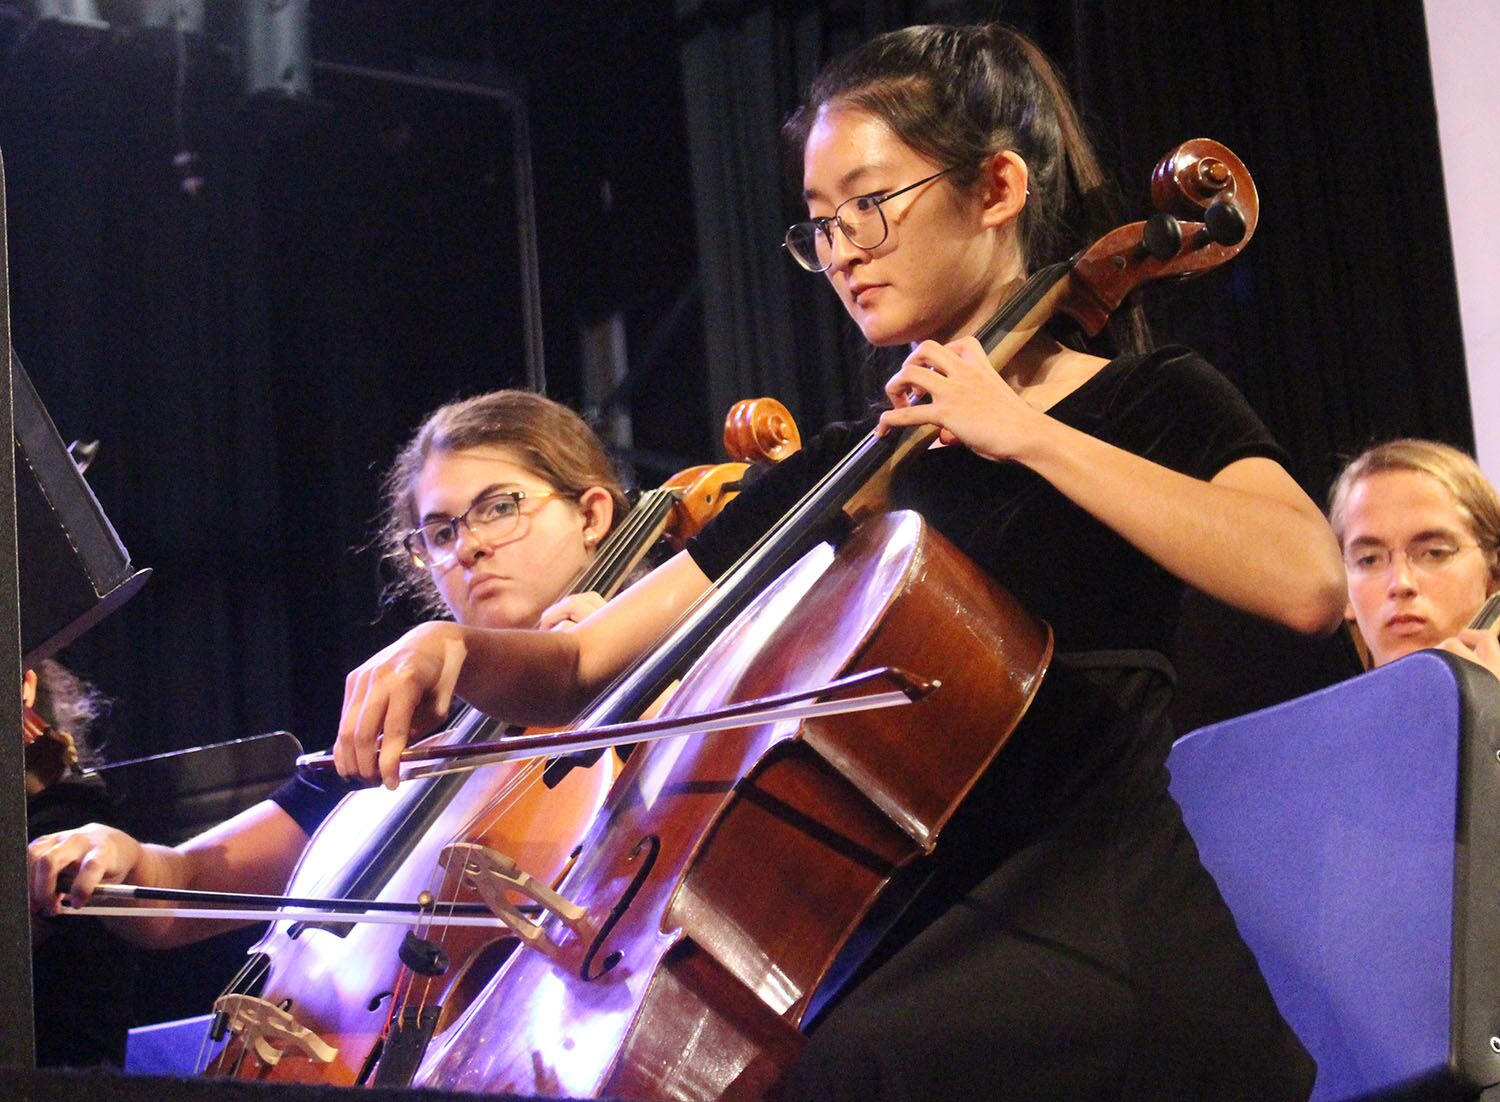 Bowing a section of American Salute composed by Morton Gould, sophomore Morgan Austrich and senior Ashley Cha sit first and second chair Monday, Feb. 11 in the auditorium. Both players have been in Philharmonic since their freshman years.